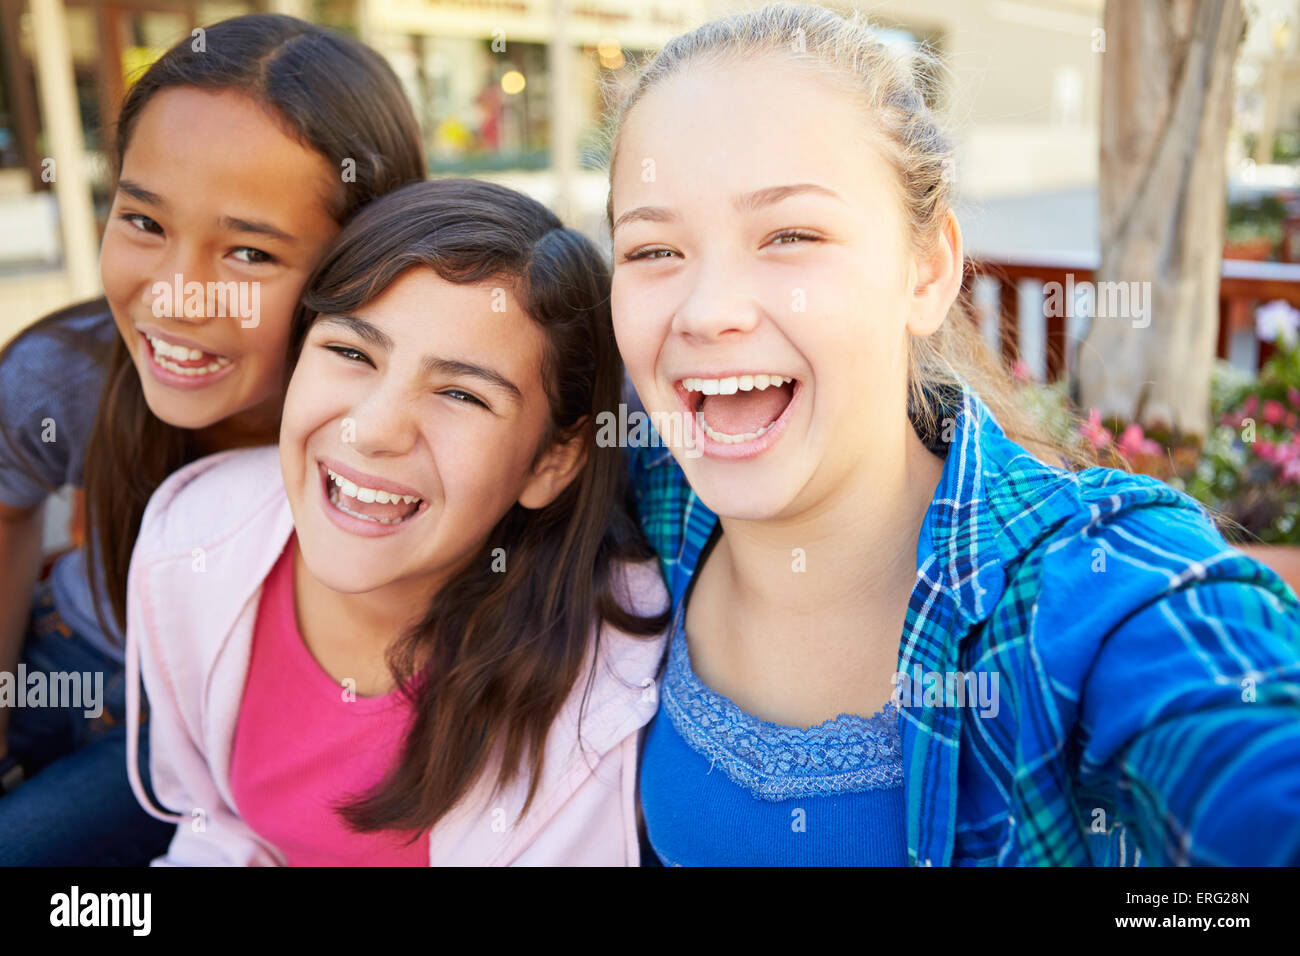 Group Of Girls Hanging Out In Mall Together - Stock Image